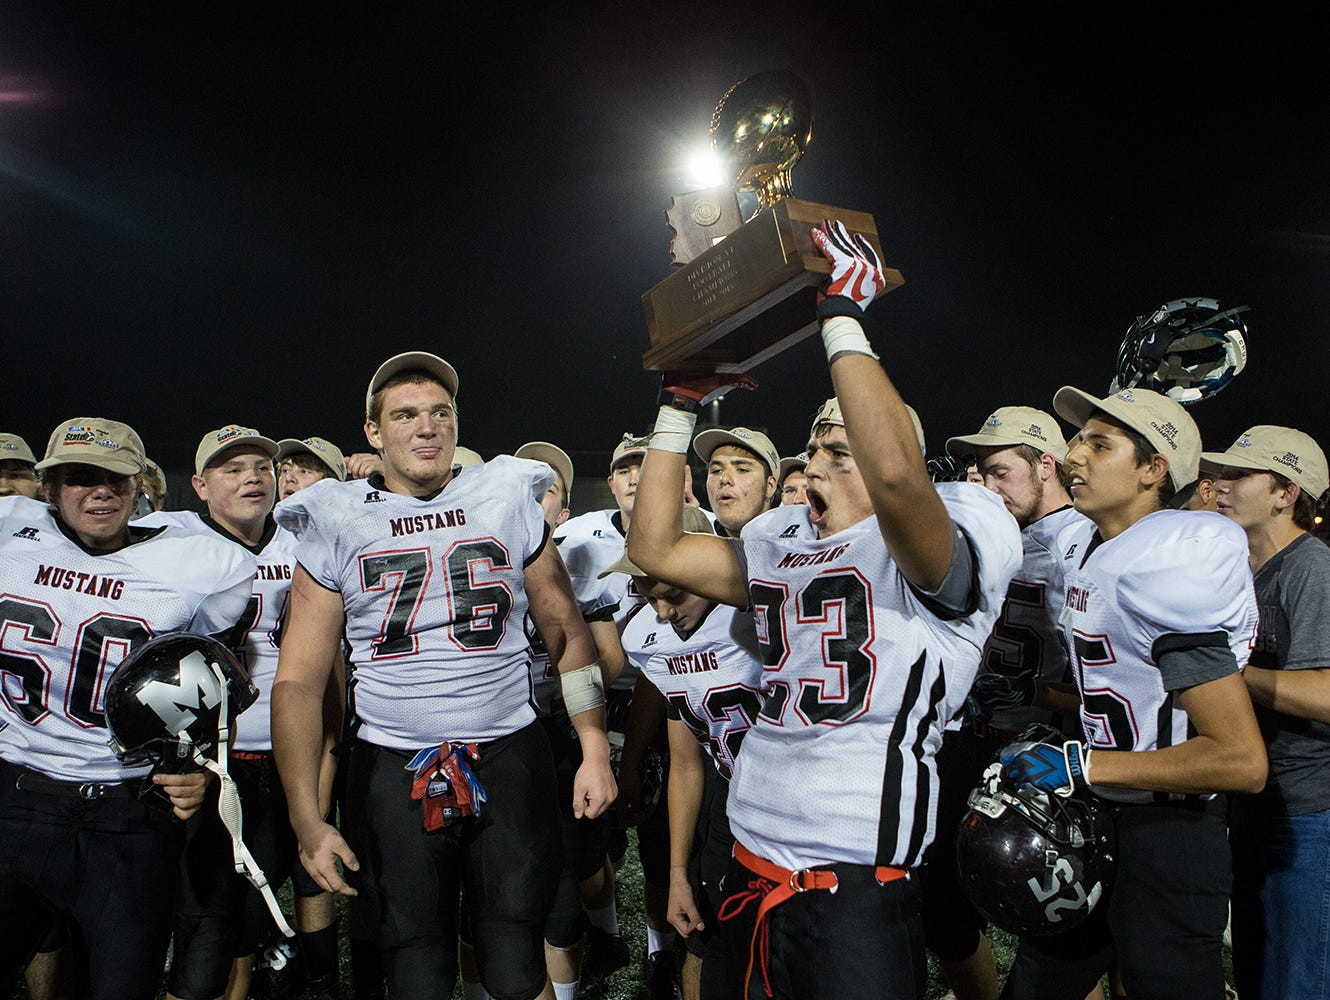 Mogollon junior running back Hunter Cochran holds the trophy and celebrates their win over Bagdad at the Division VI high school football state championship game November 15, 2014 in Phoenix.